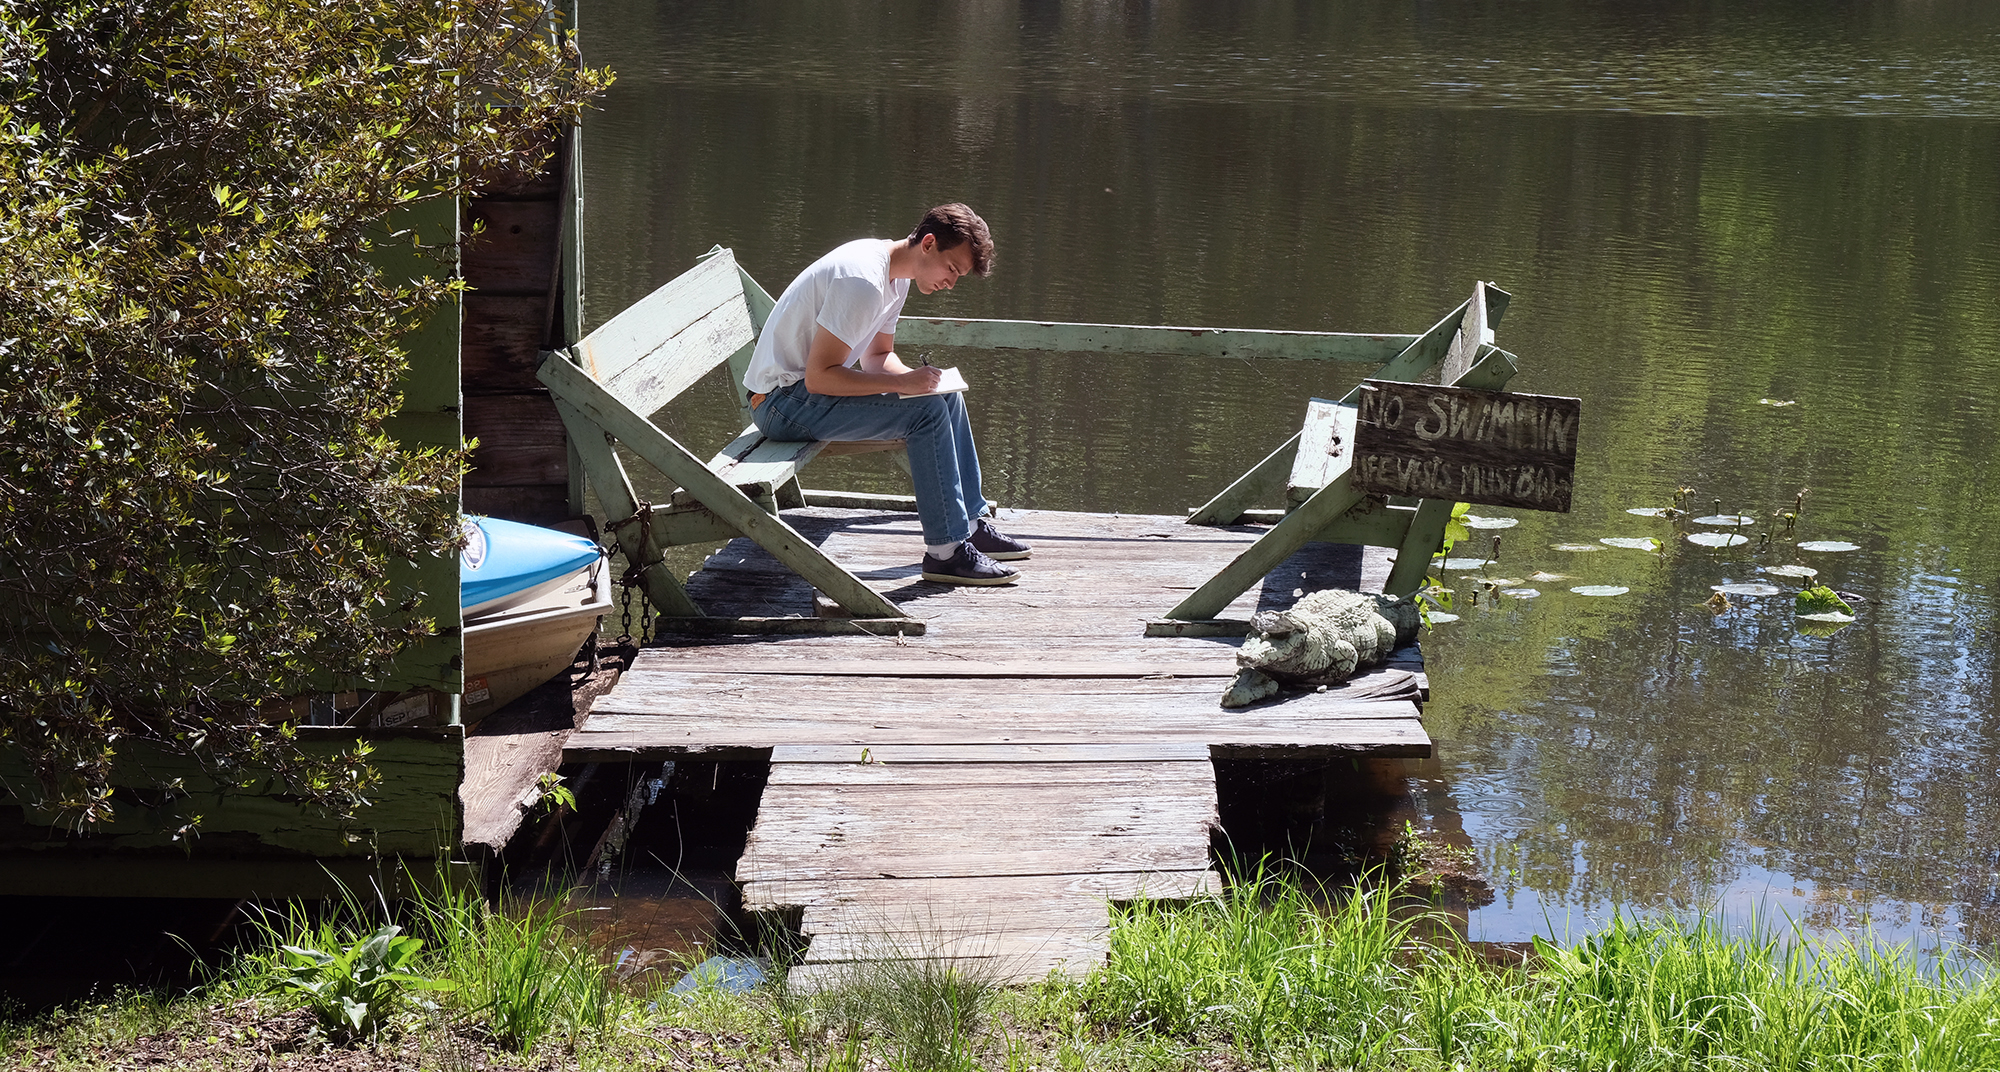 Max Strickberger on a dock writing